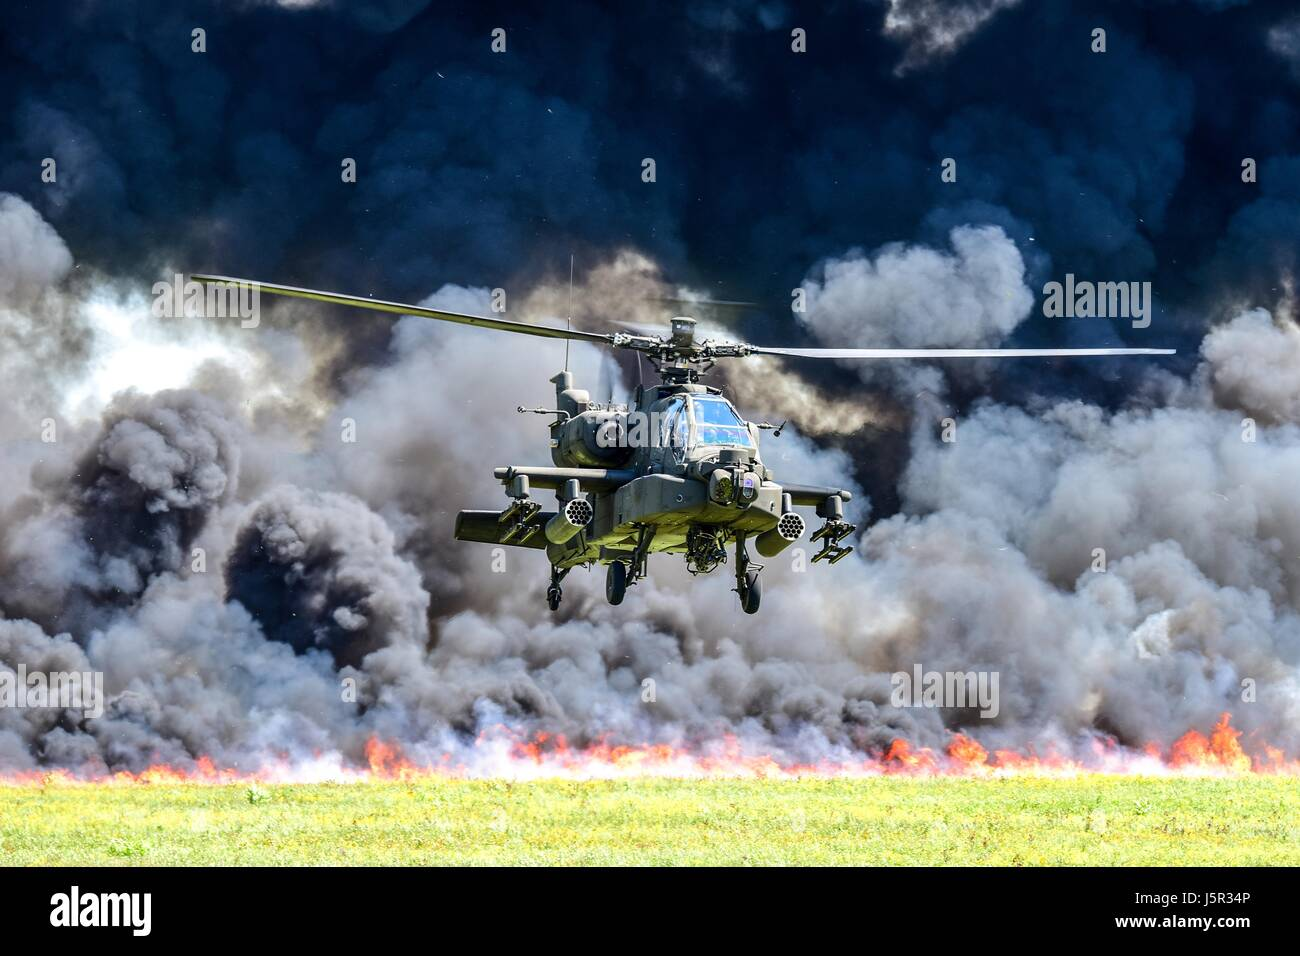 A U.S. Army AH-64D Apache attack helicopter flies in front of a wall of fire during the South Carolina National Stock Photo